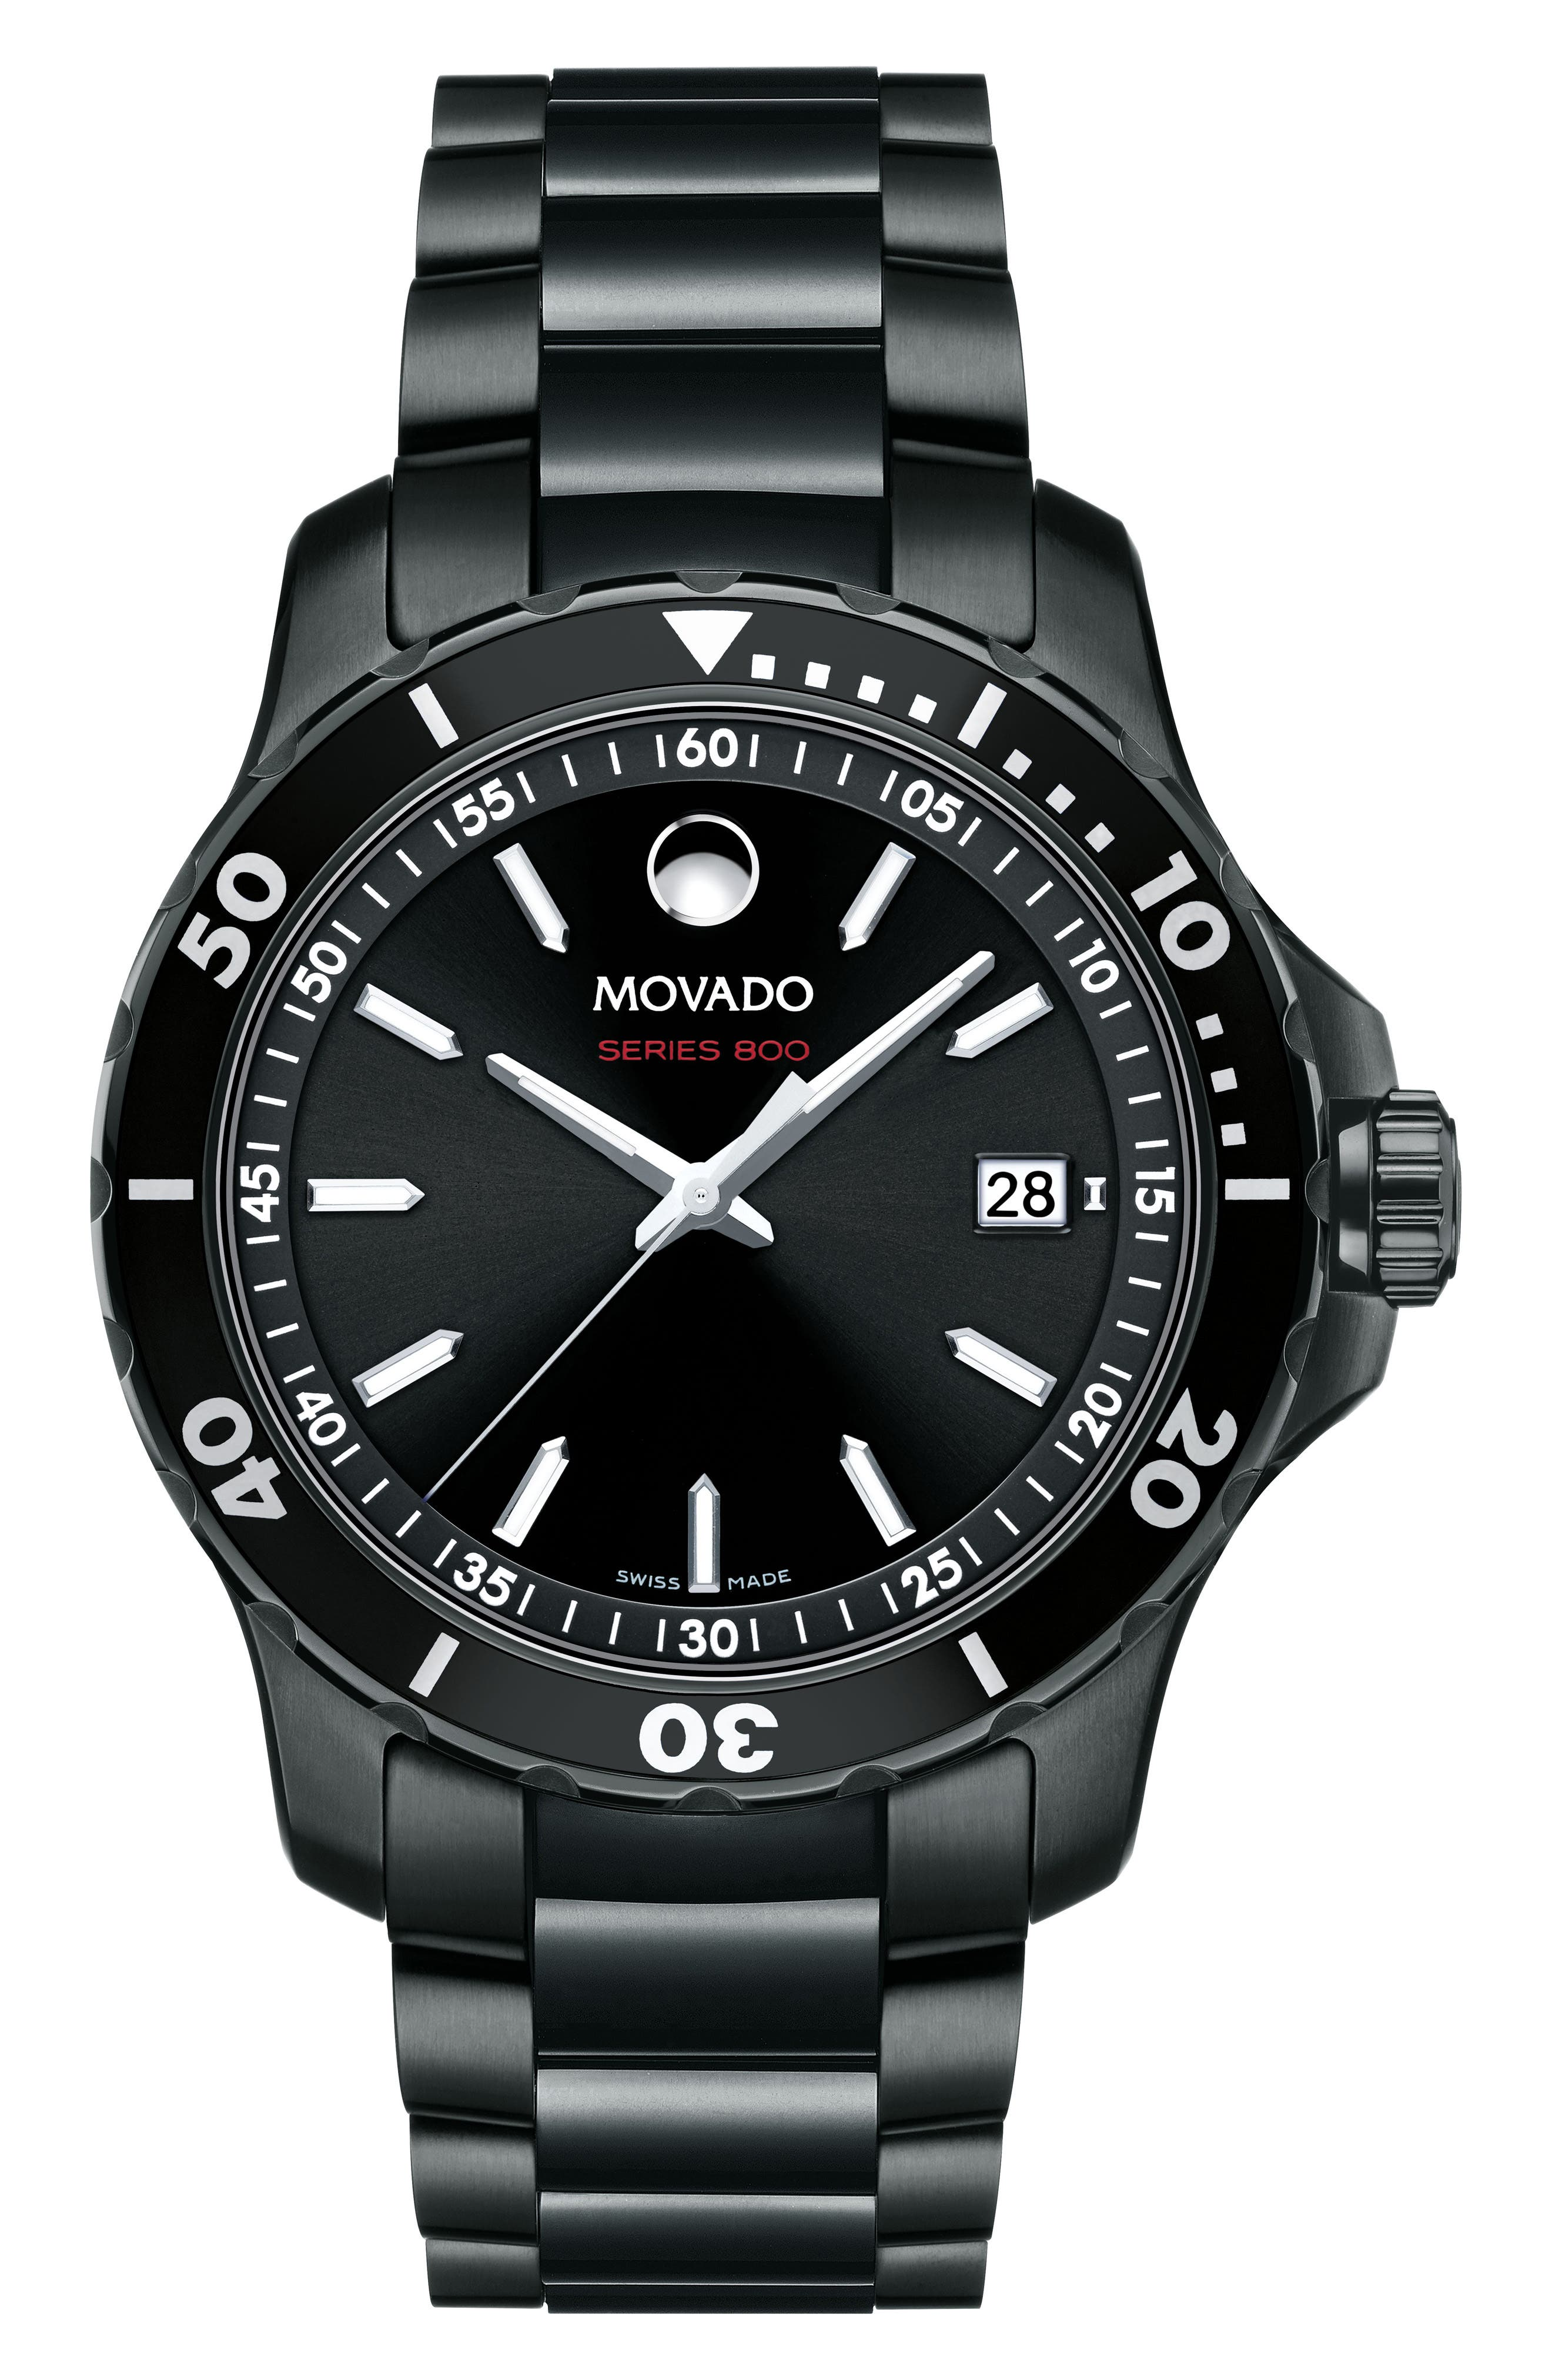 Main Image - Movado Series 800 Bracelet Watch, 40mm